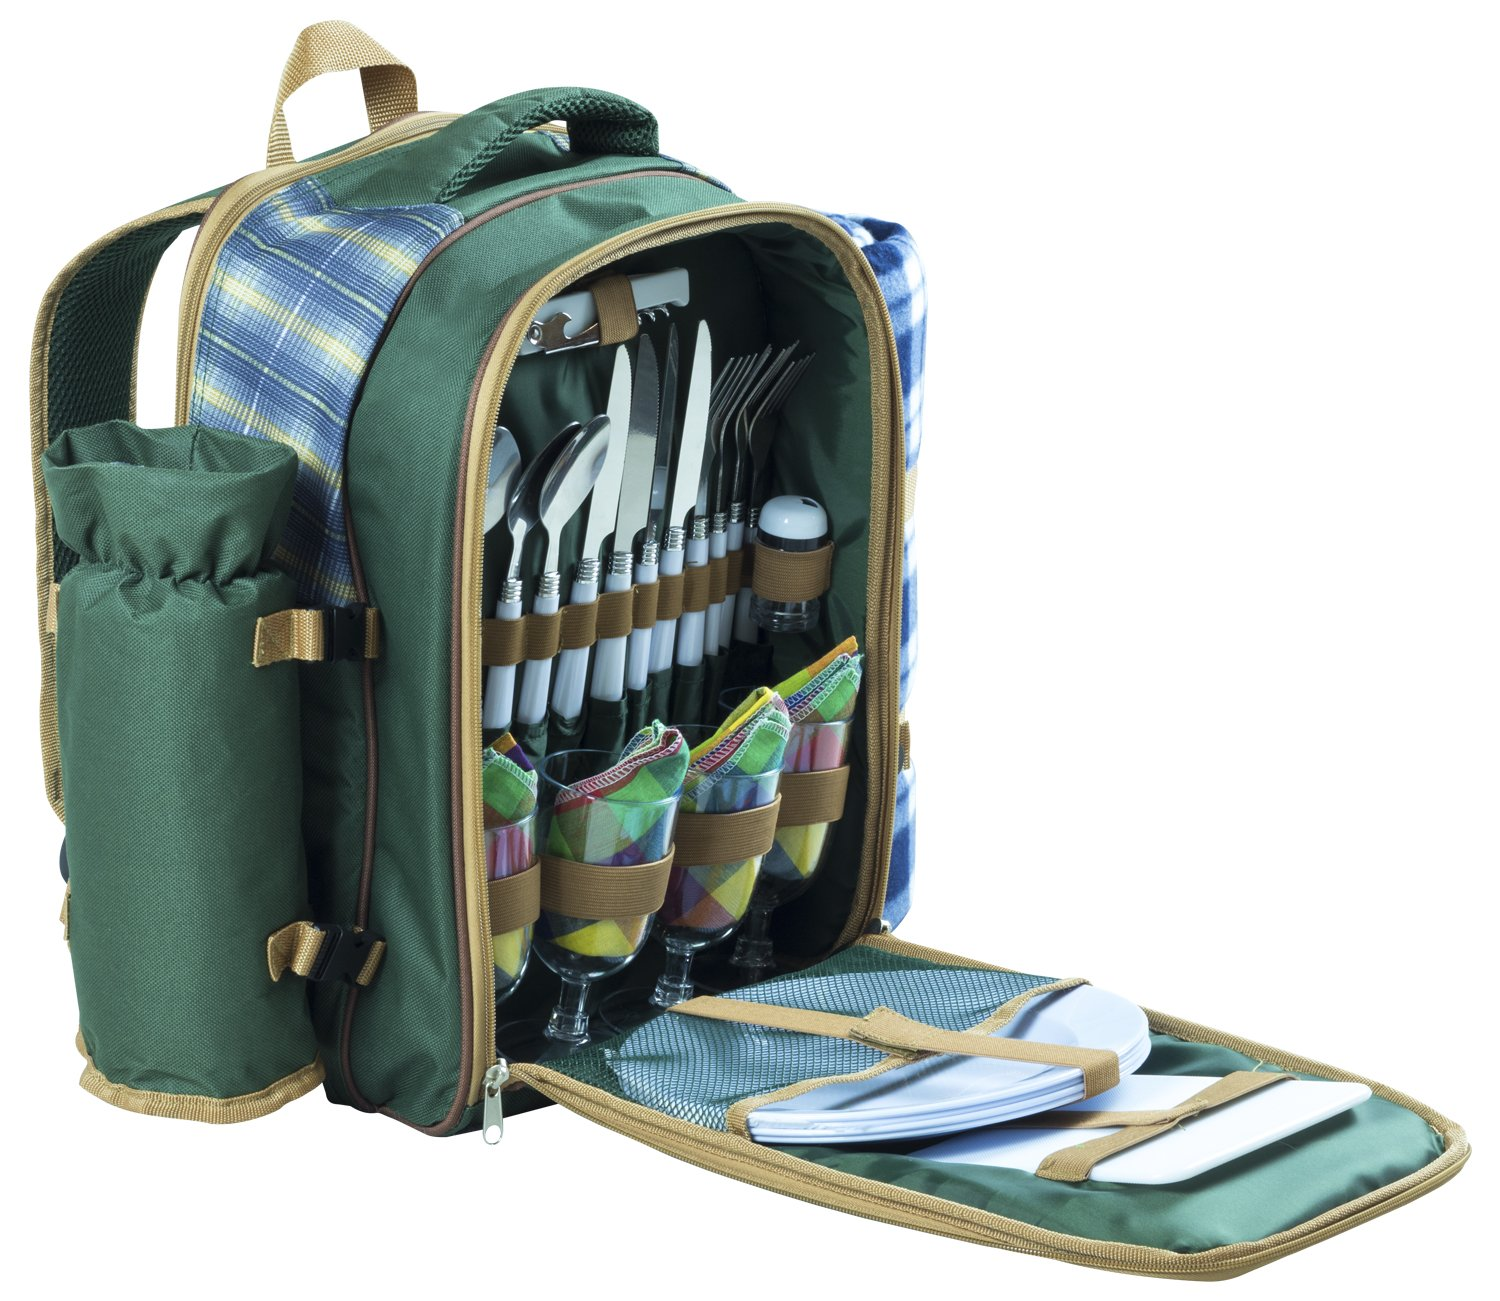 Andes 4 Person Deluxe Picnic Set Hamper Backpack/Rucksack Cool Bag, Includes Cutlery, Plates, Napkins, Wine Glasses, Bottle Opener, Chopping Board